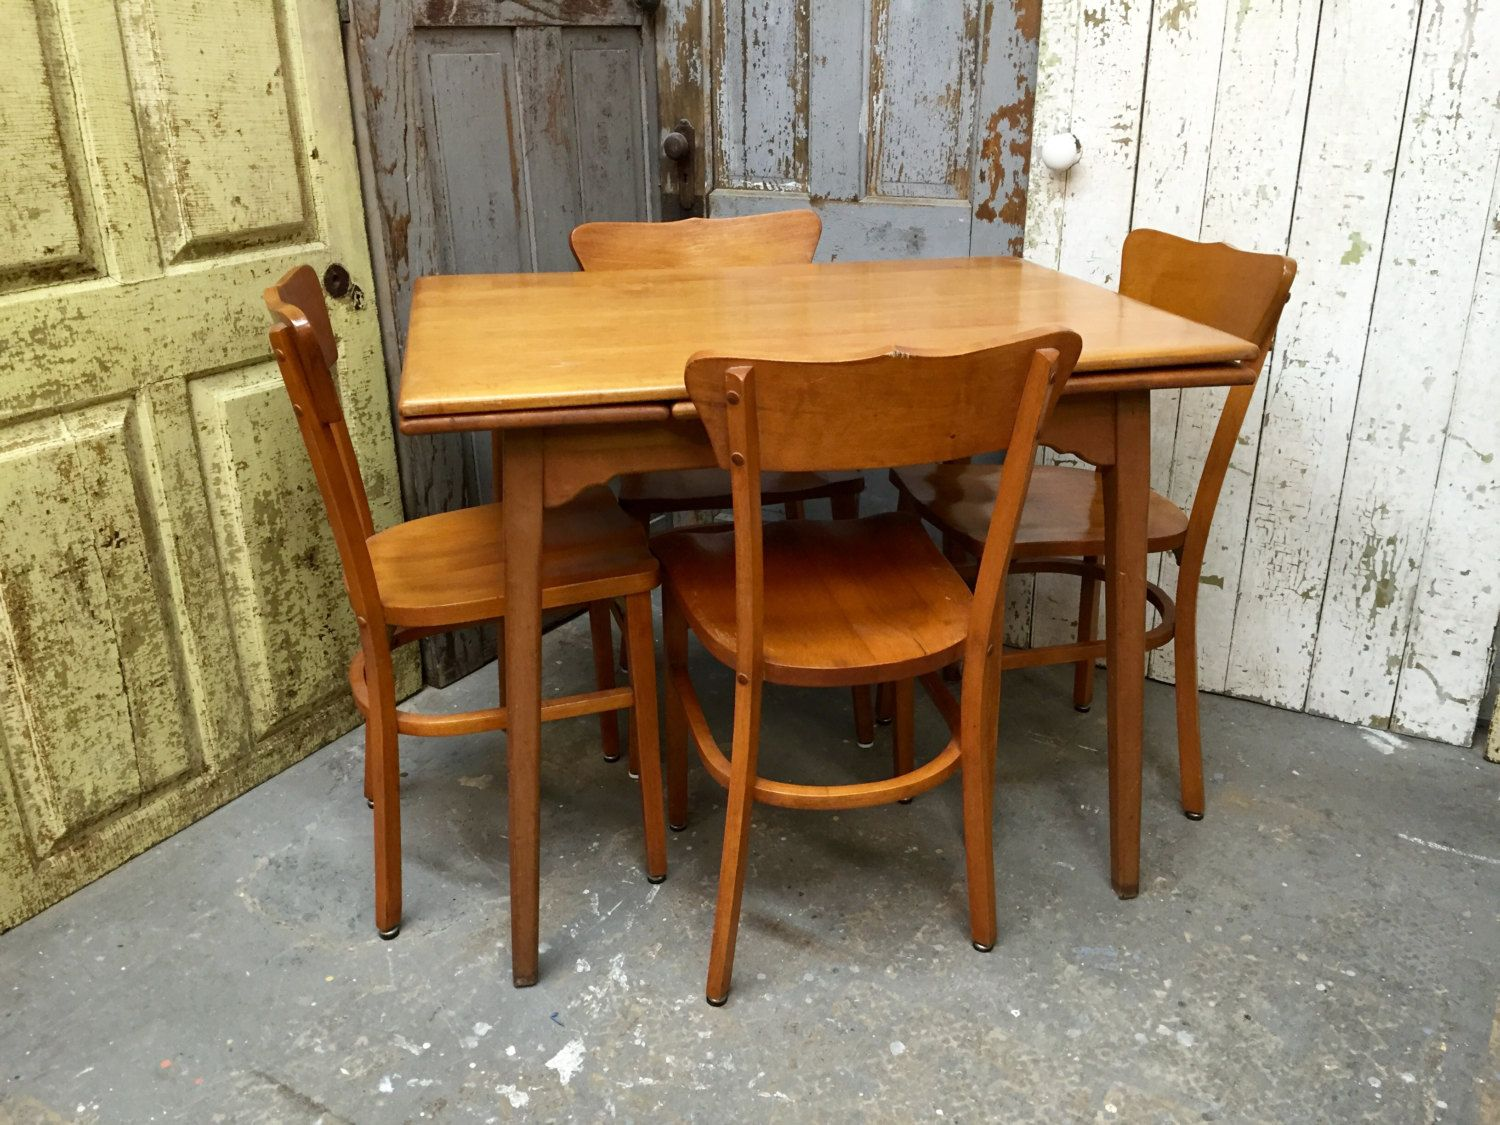 Small Dining Set Wooden Dining Table Small Wooden Table Expandable Table 1960s Furniture Kitchen Dining Set Real Wood Furniture Real Wood Furniture Wooden Dining Tables Small Dining Sets